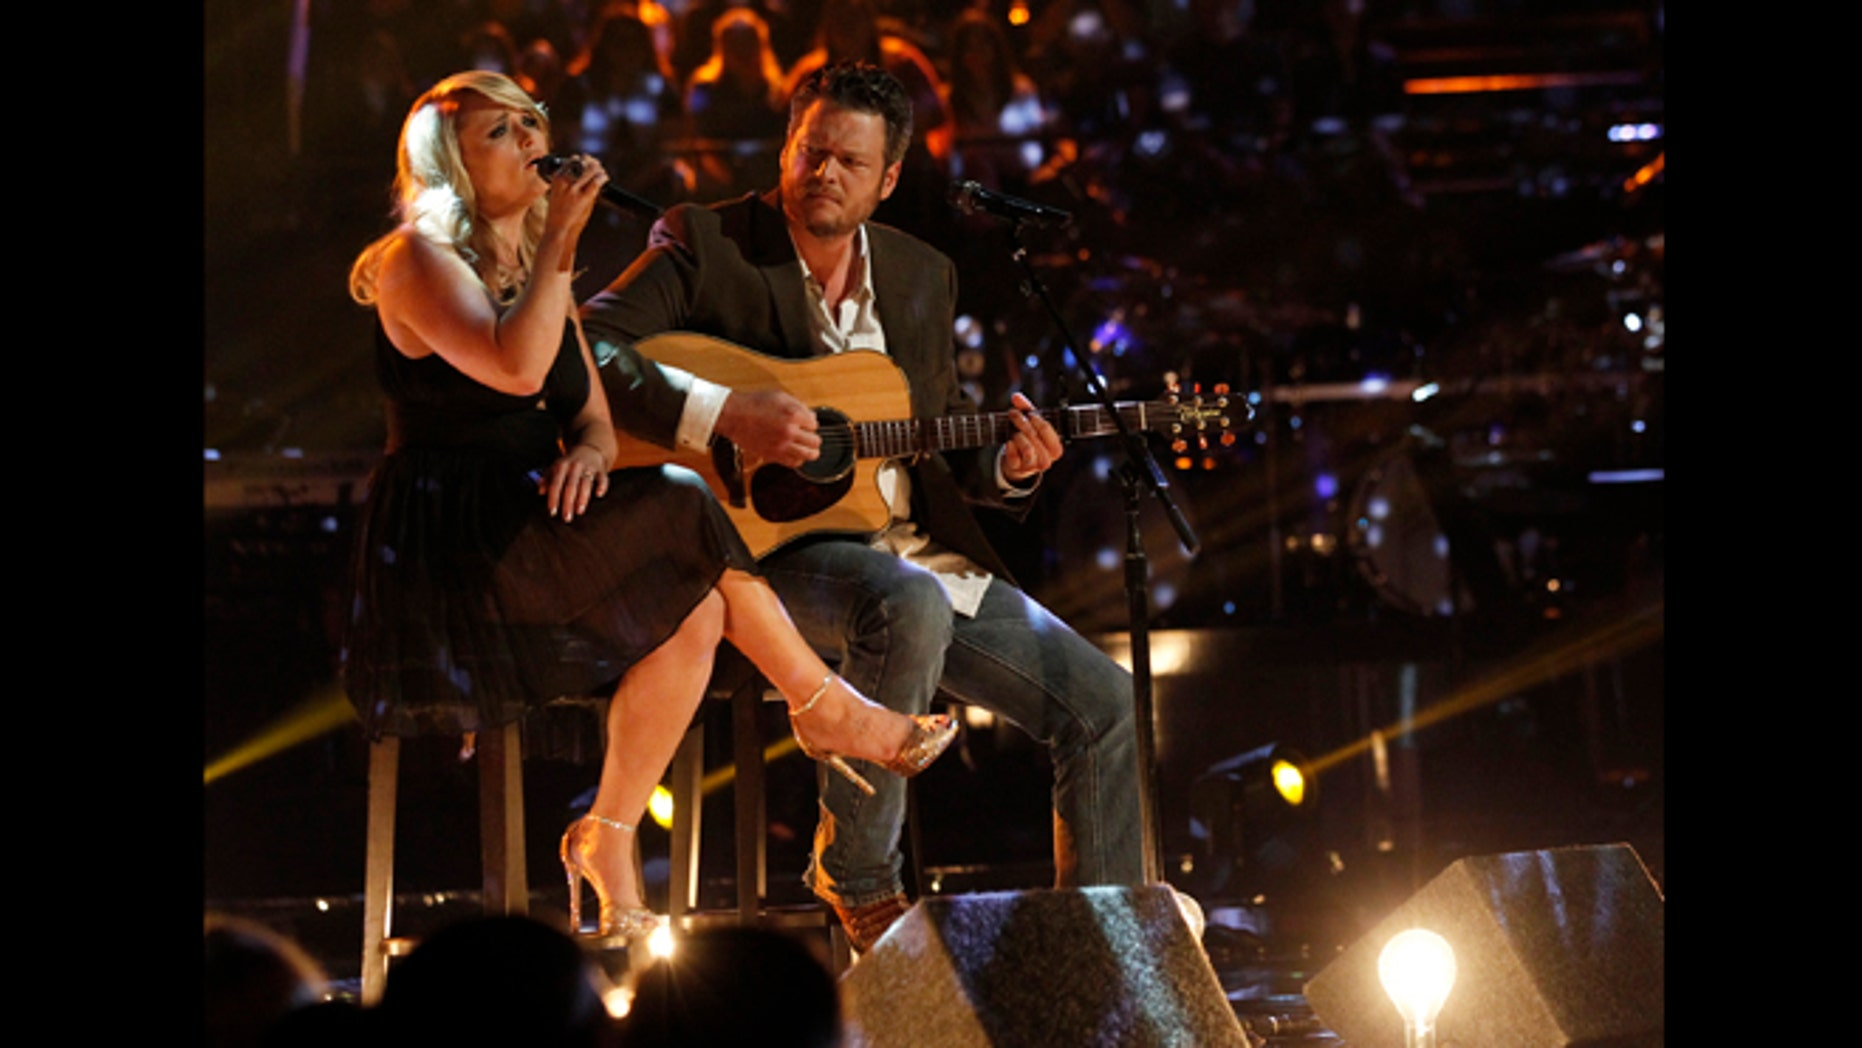 """This May 21, 2013 photo released by NBC shows married singers Miranda Lambert, left, and  Blake Shelton performing an acoustic version of the hit """"Over You"""" during a broadcast of the singing competition series, """"The Voice,"""" in Los Angeles."""